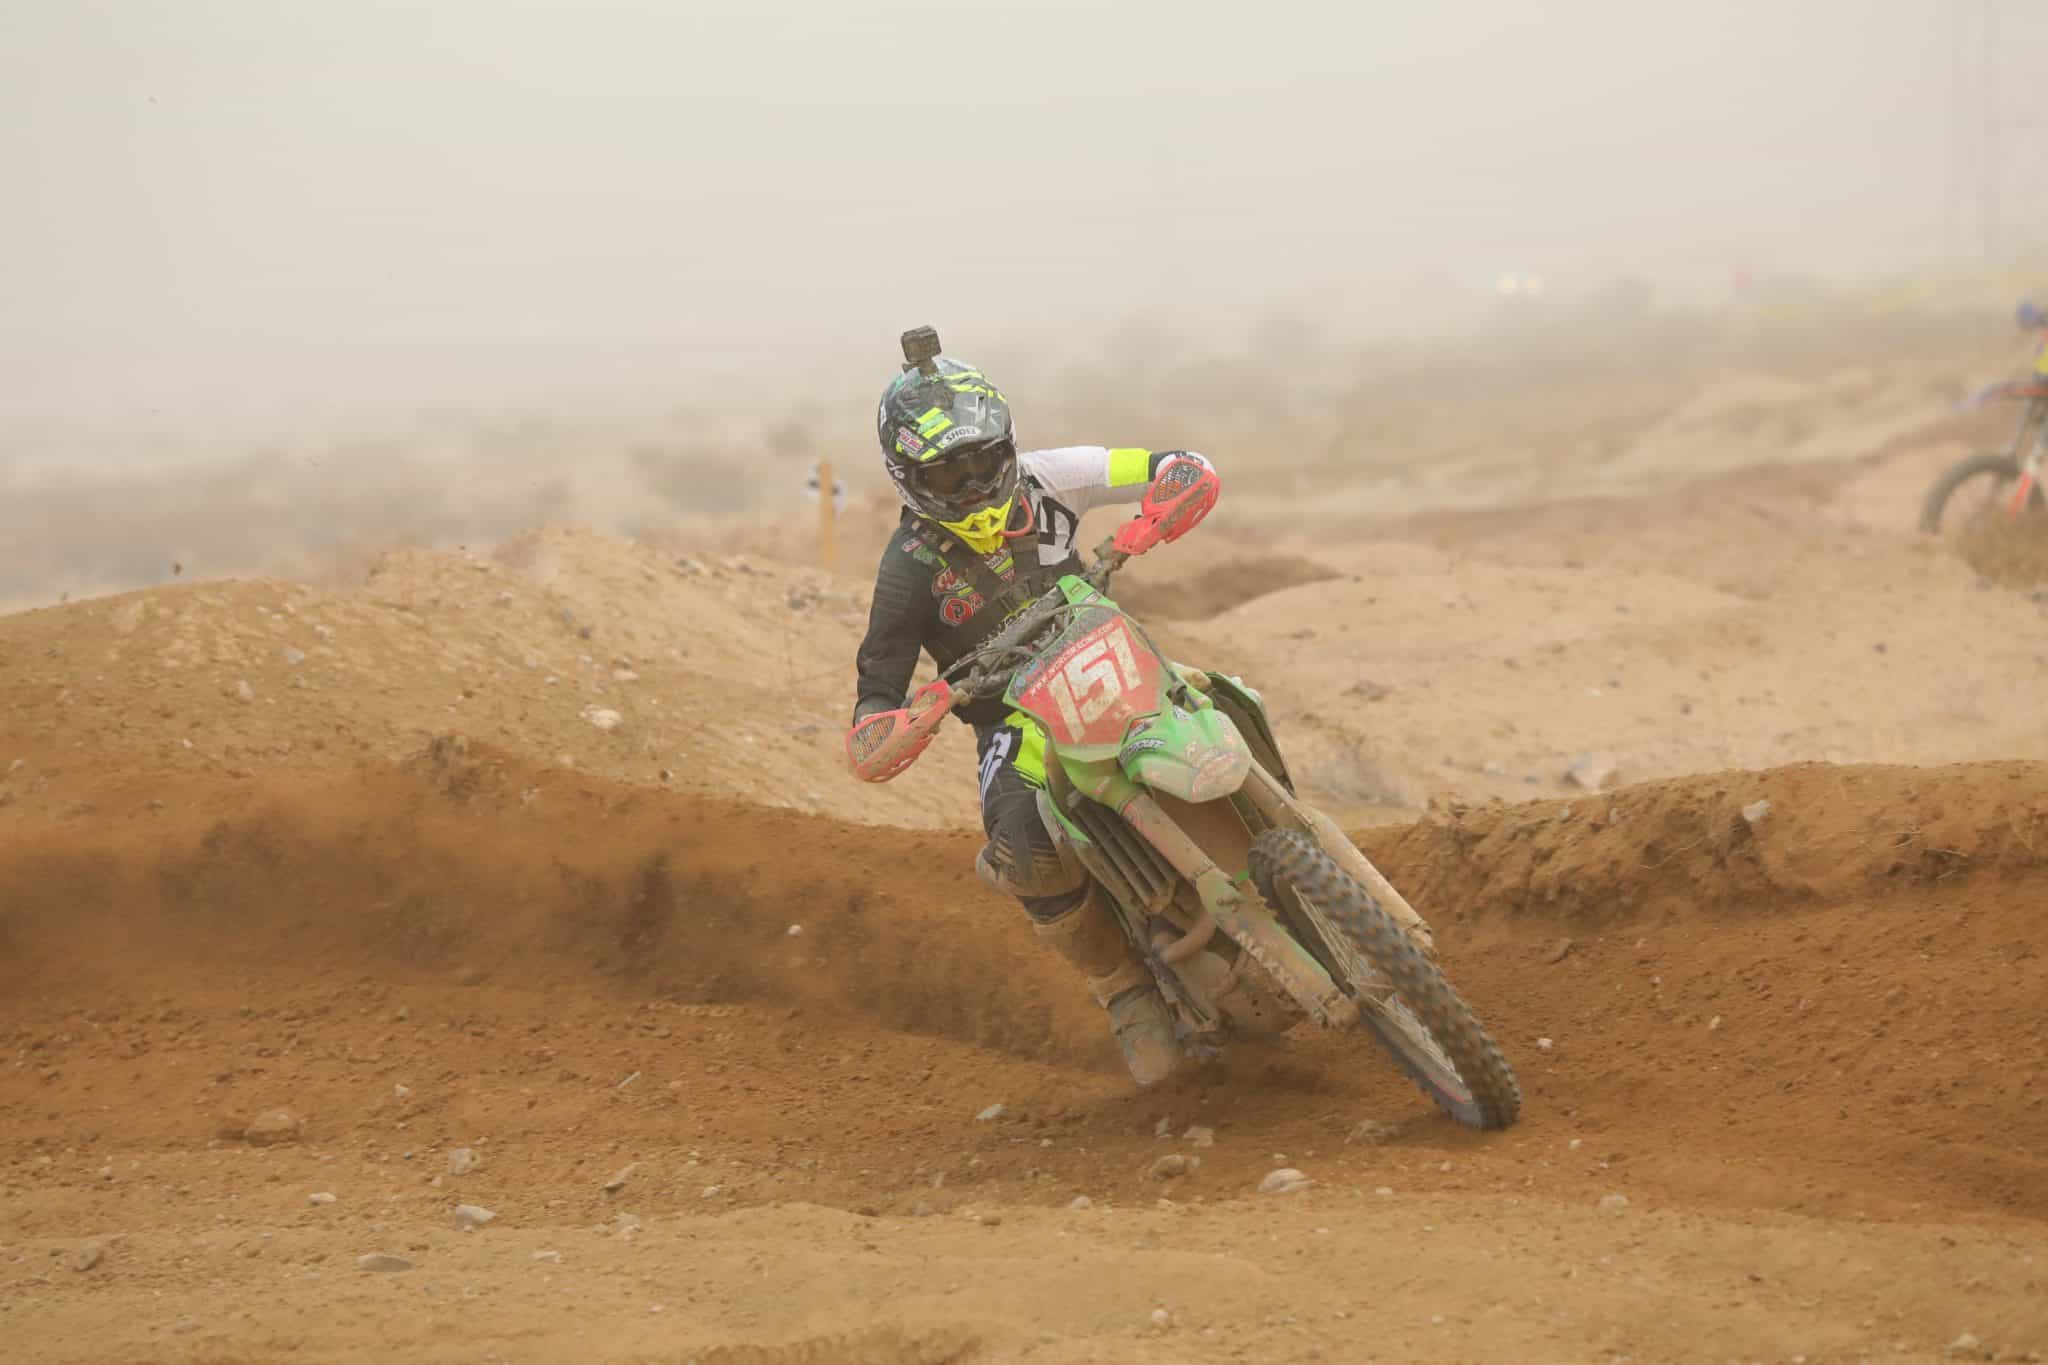 Clay Hengeveld riding his KX250 at the 2020 Primm WORCS race